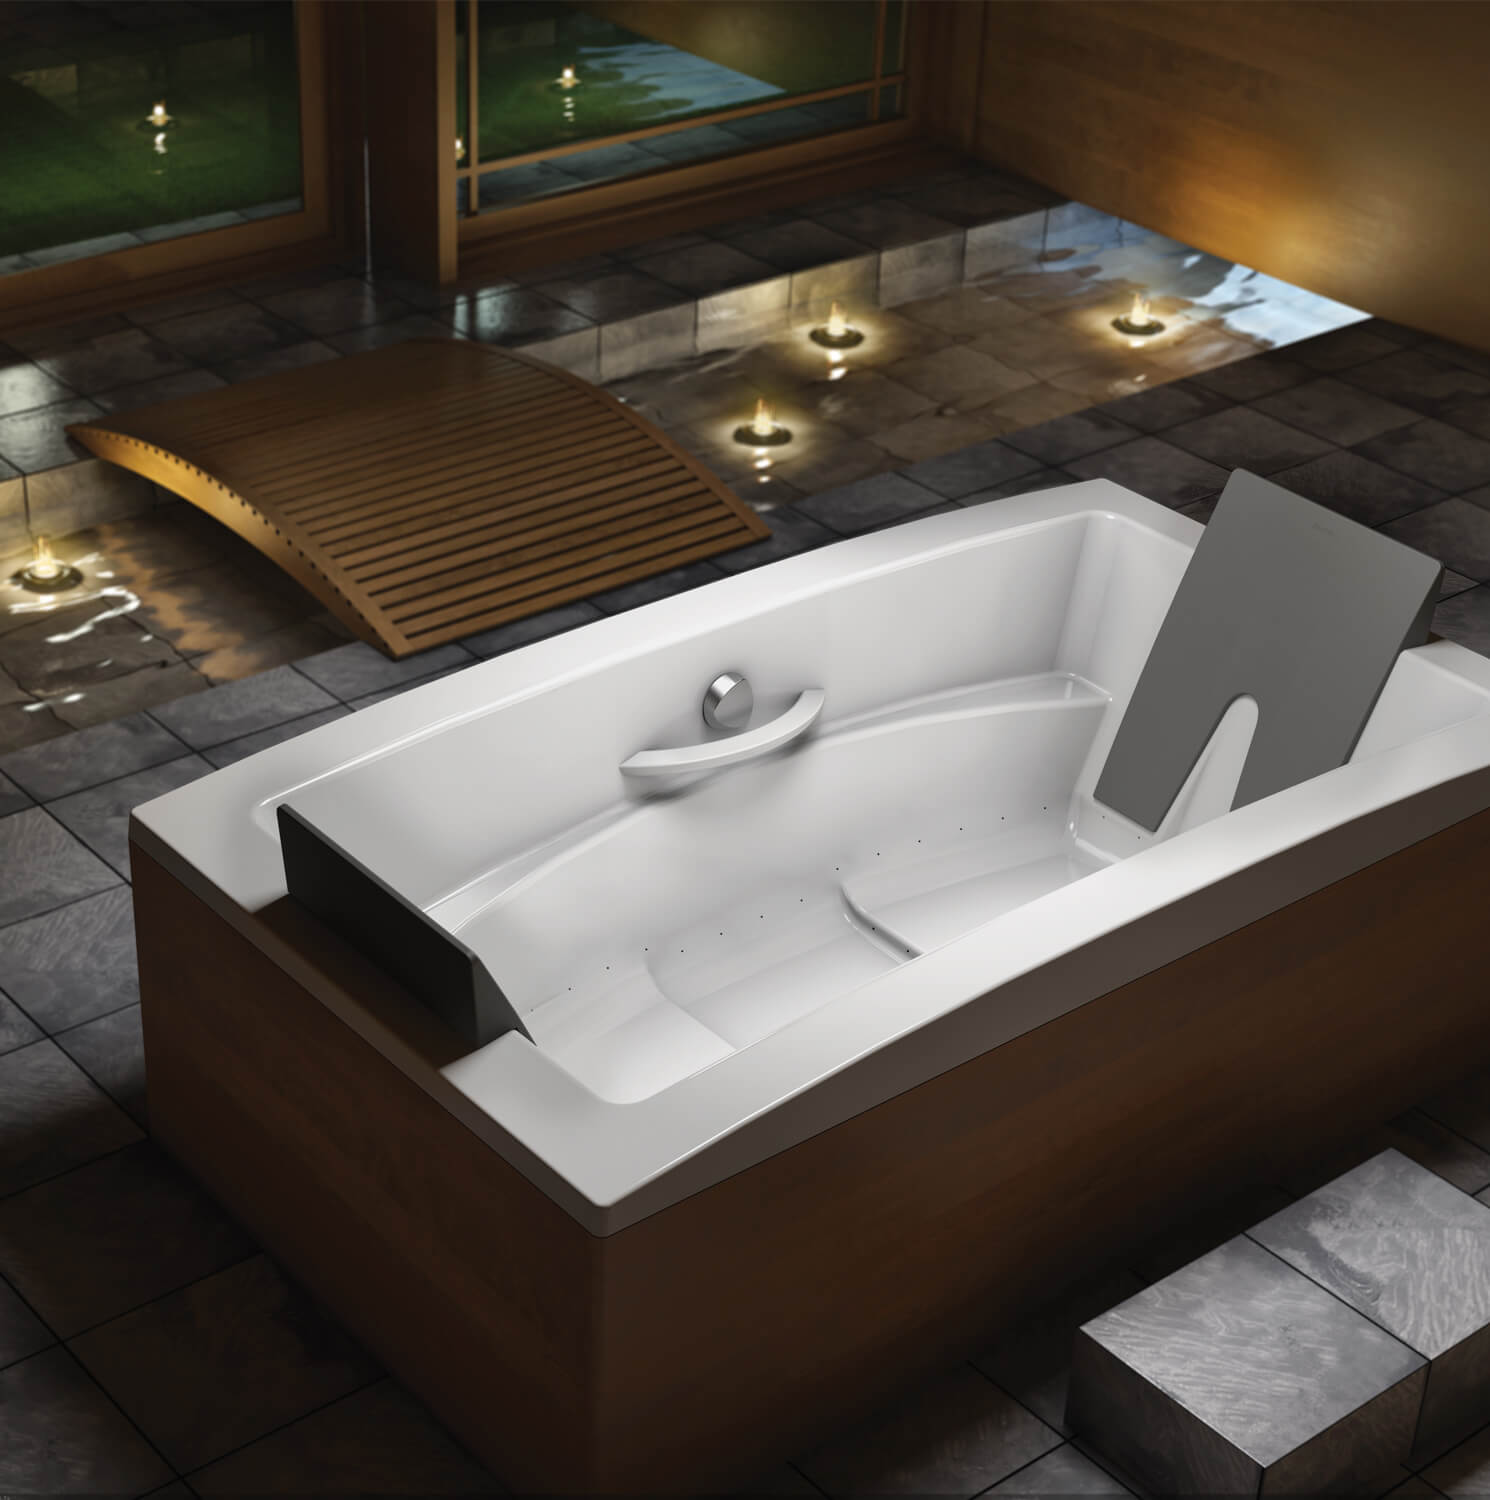 Bainultra Inua® 7240 two person drop-in air jet bathtub for your modern bathroom